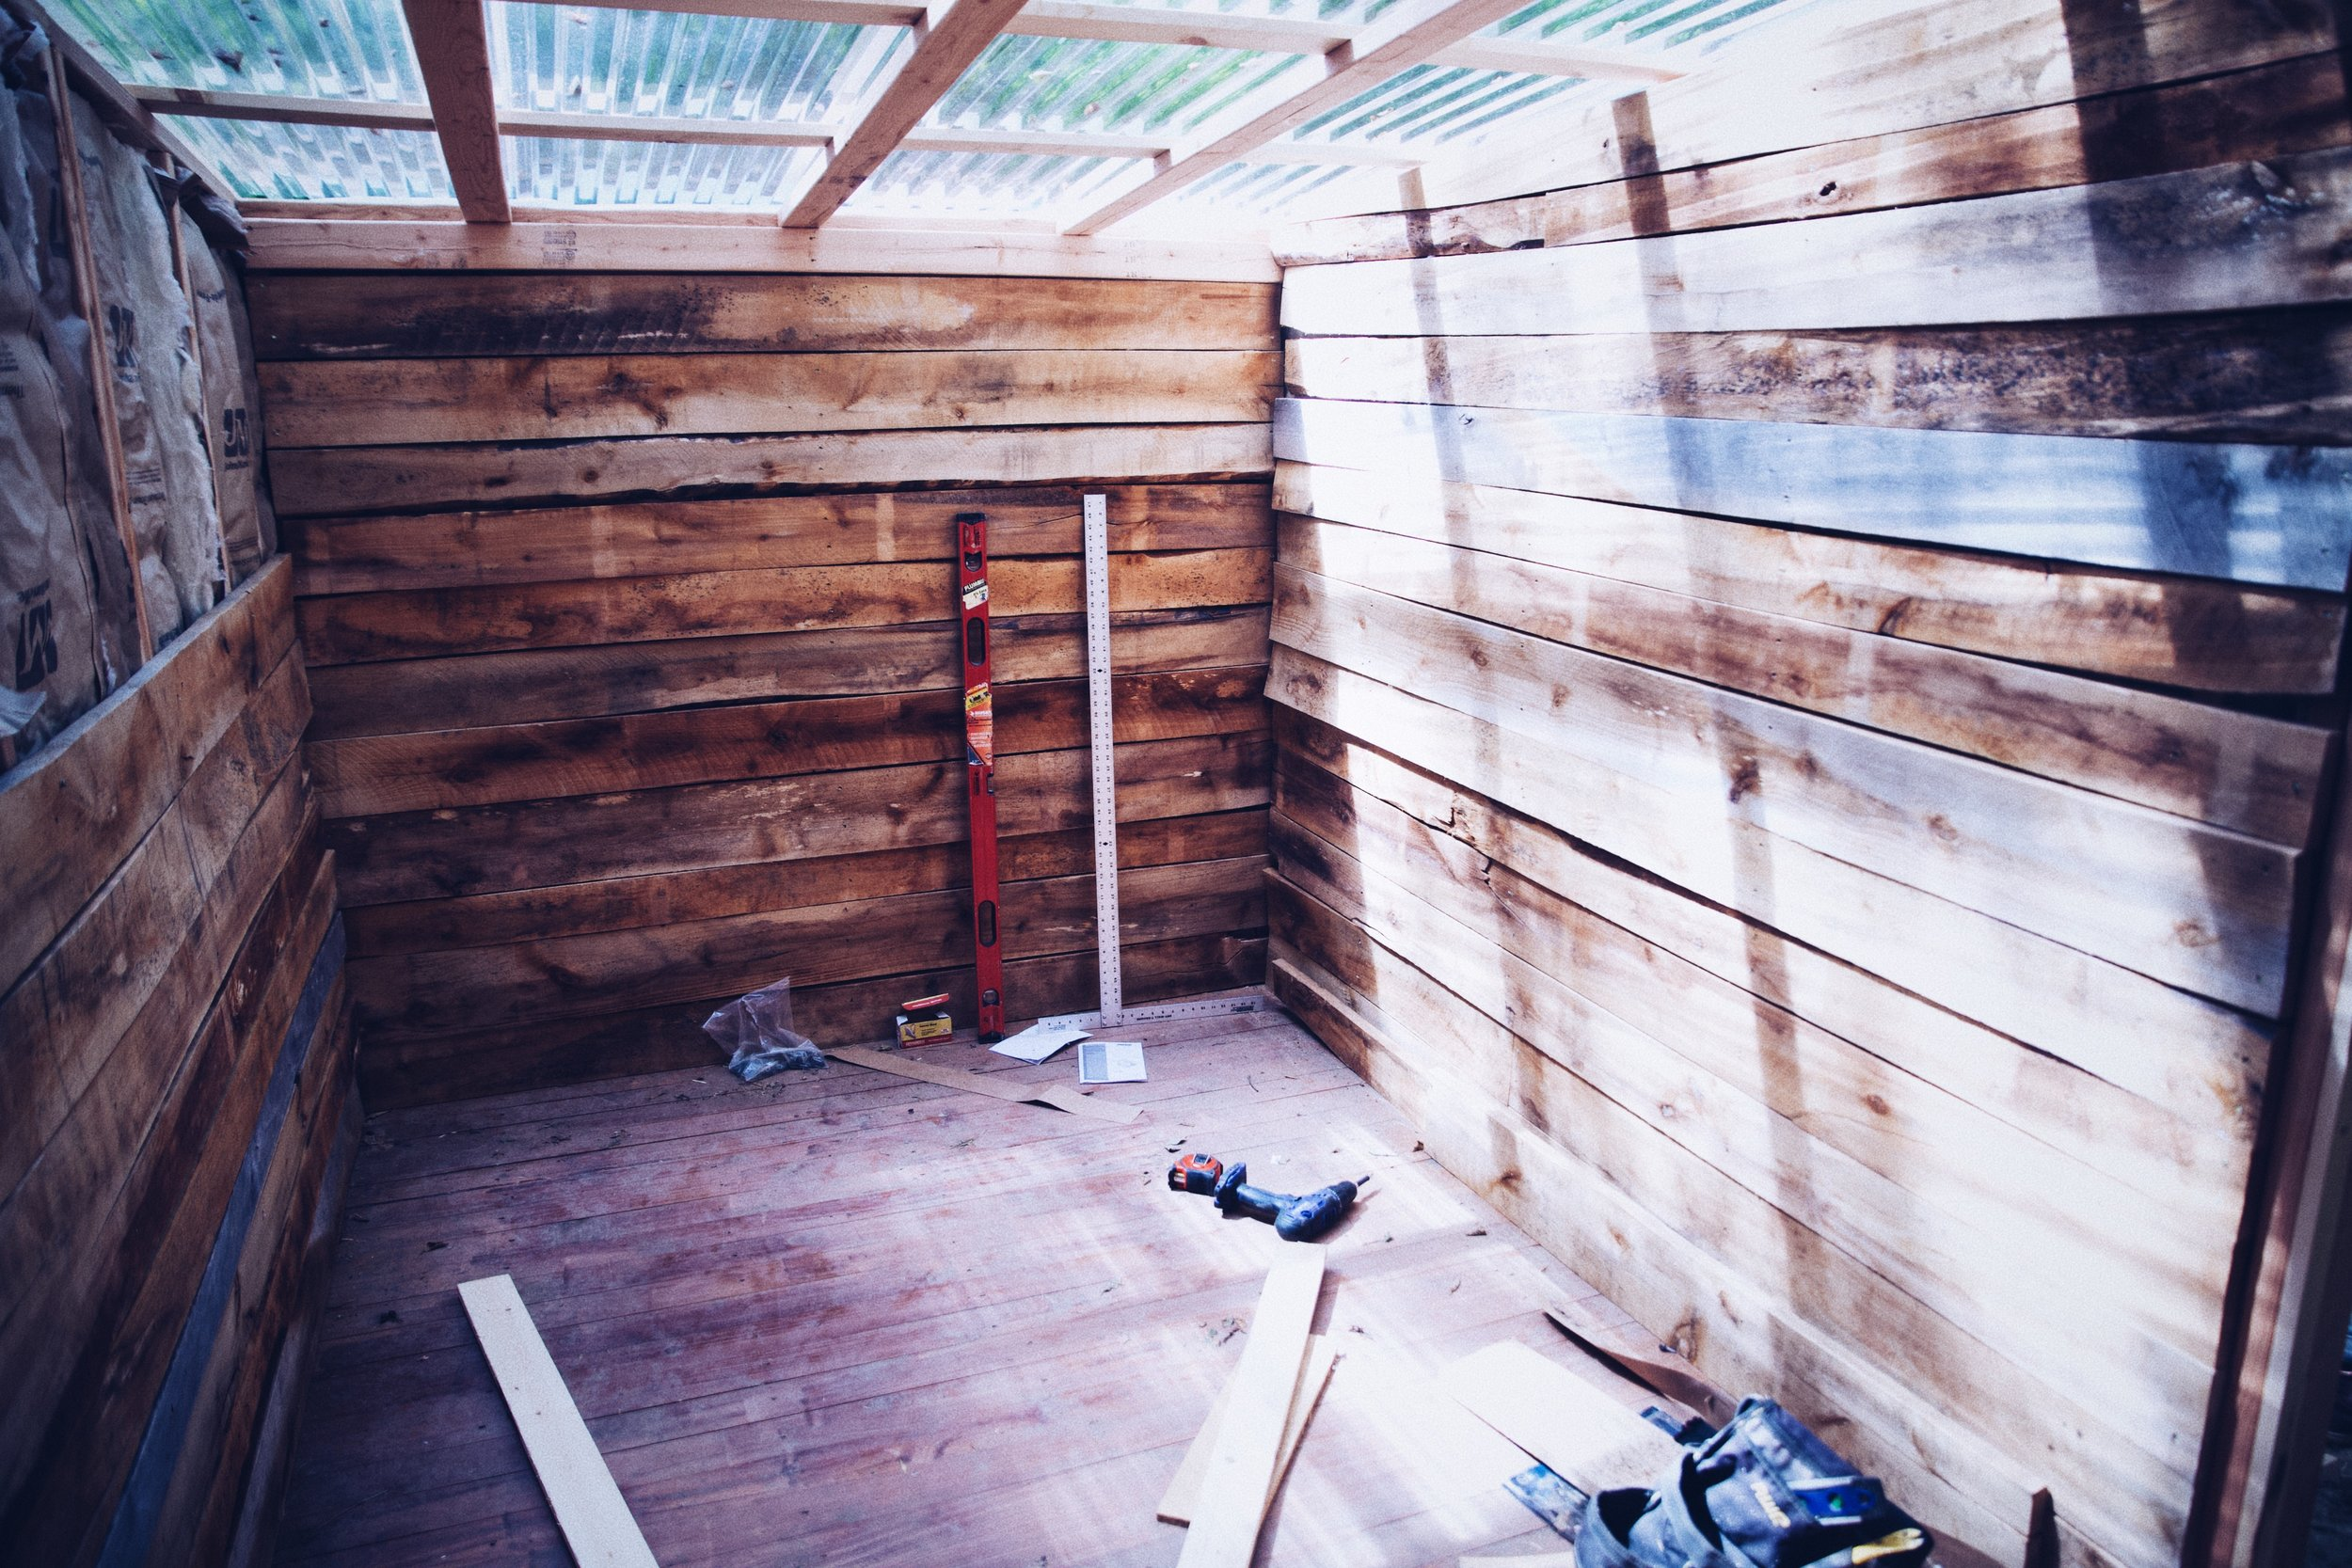 Bathroom Cabin in the works